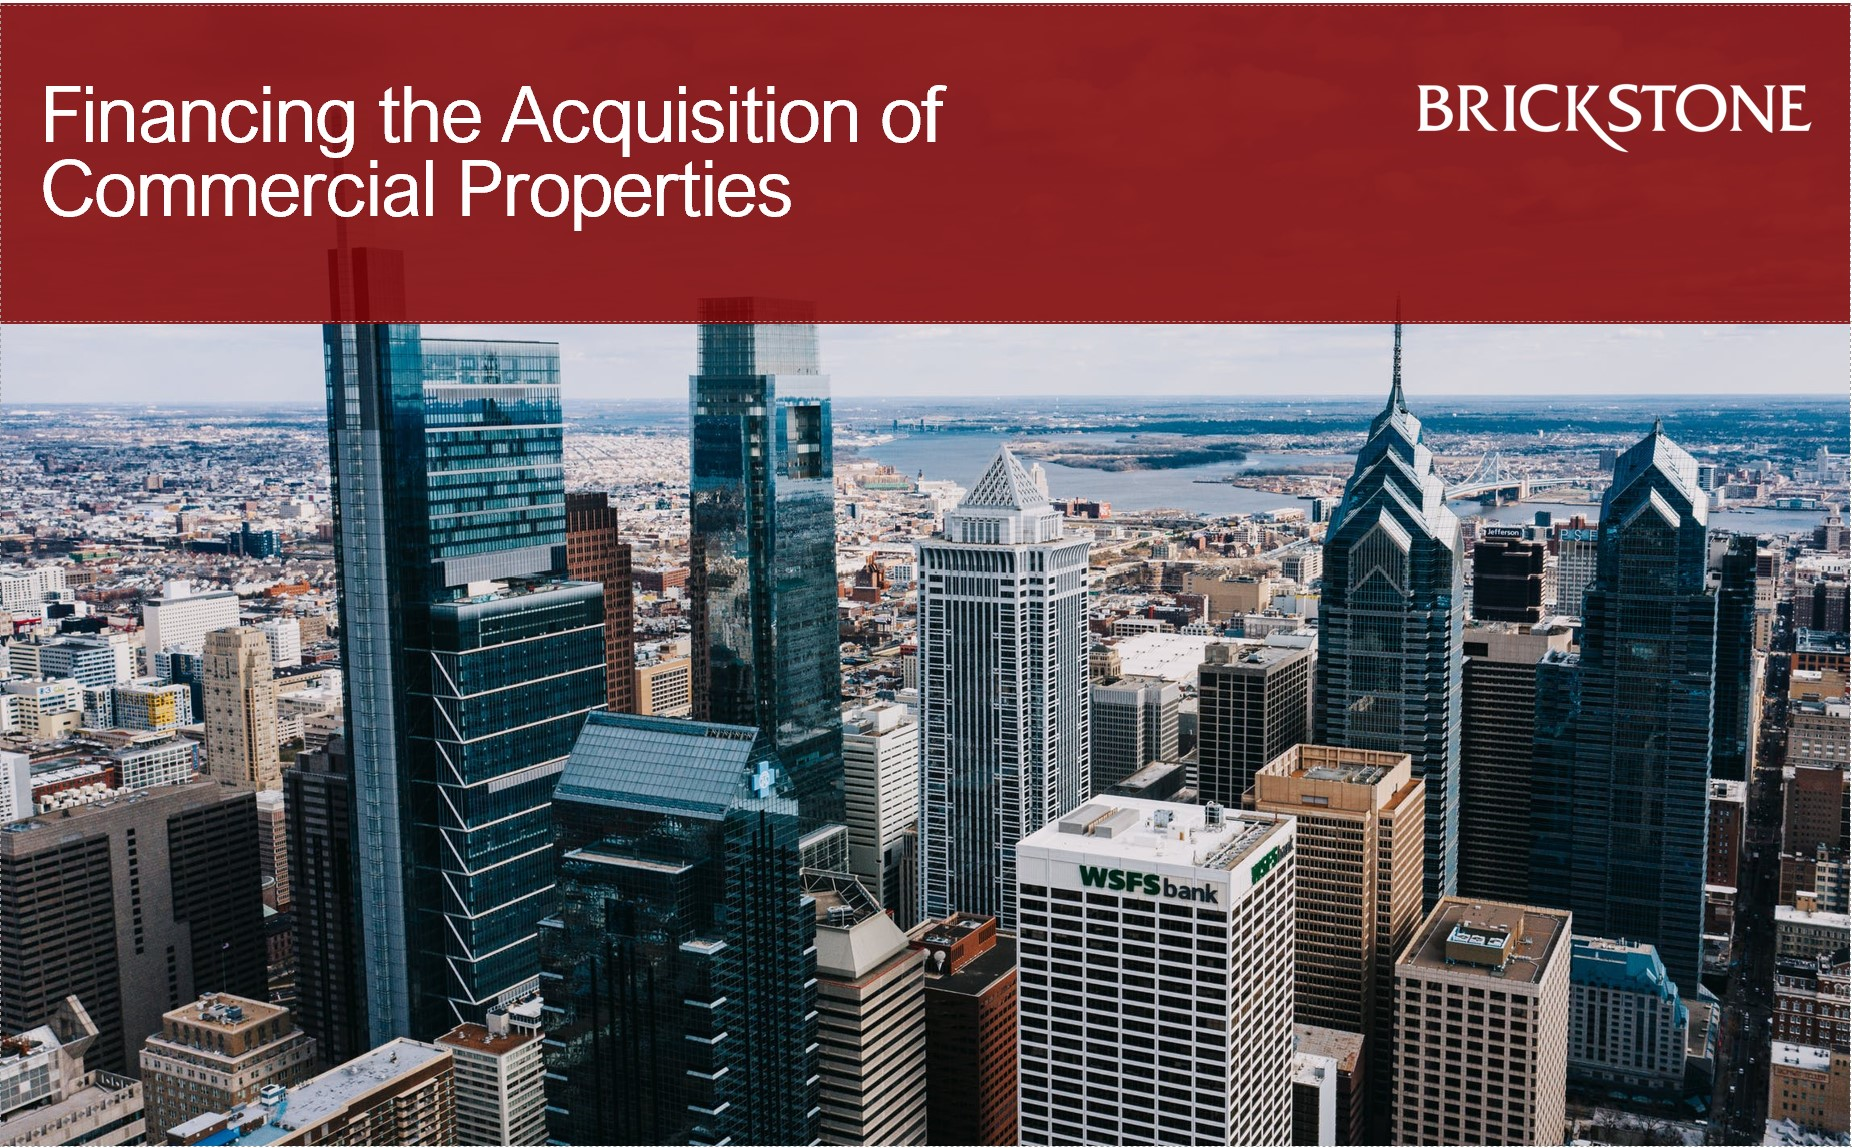 Debt Finance for Commercial Property Aquitision